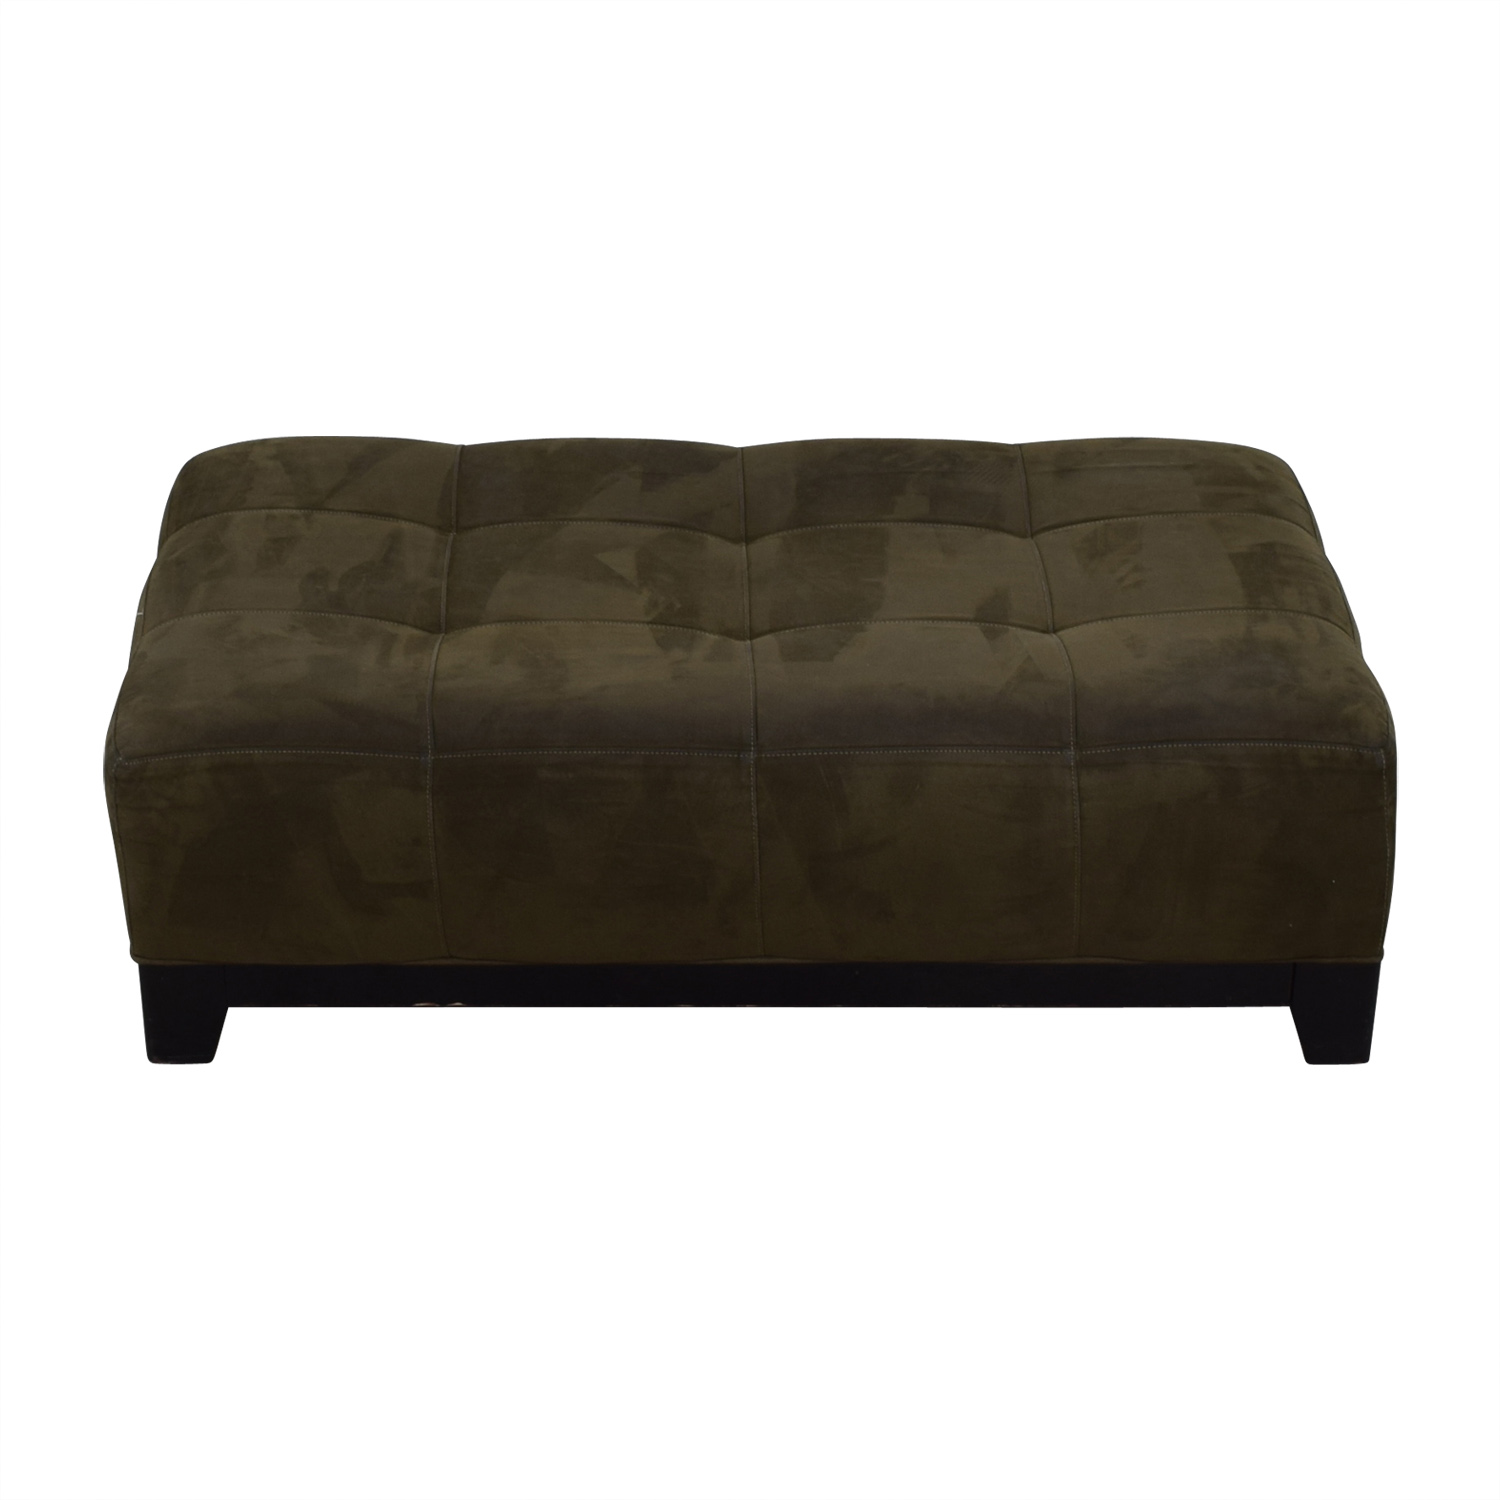 raymour flanigan raymour flanigan brown leather ottoman second hand